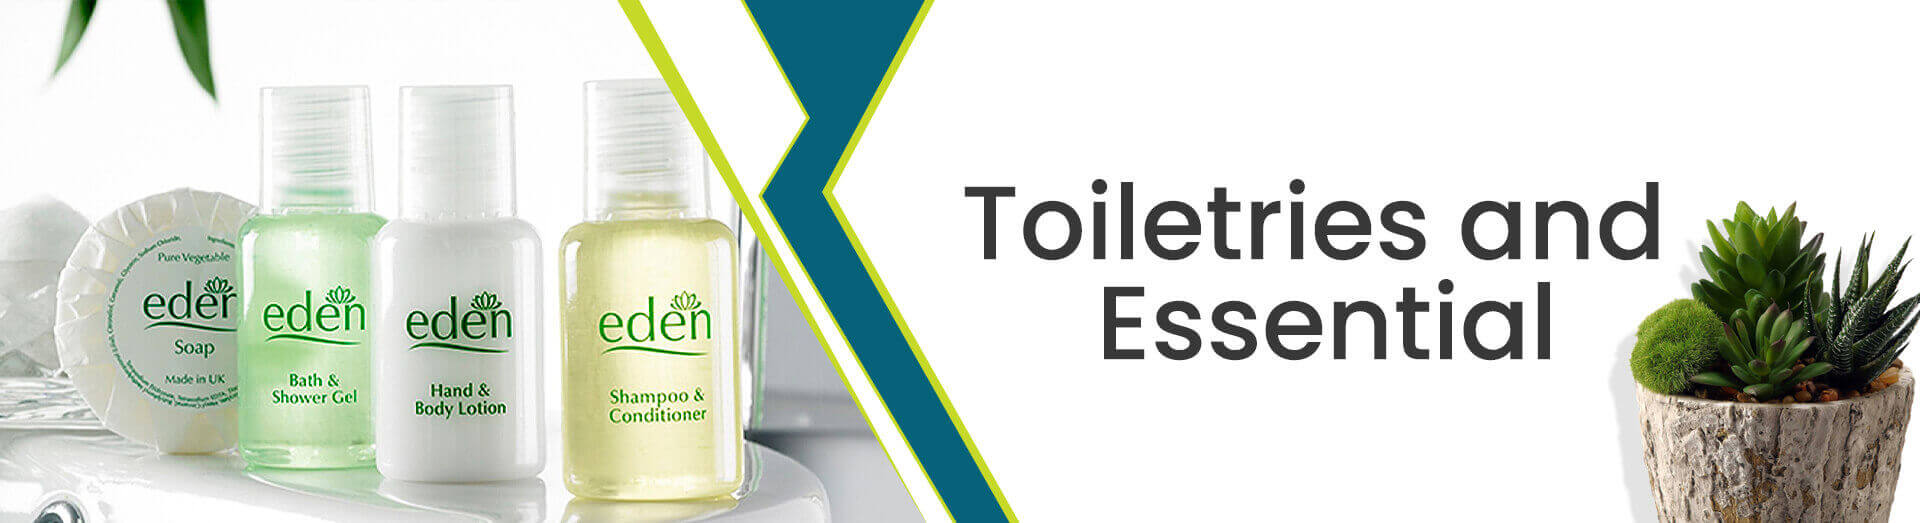 Toiletries and Essential